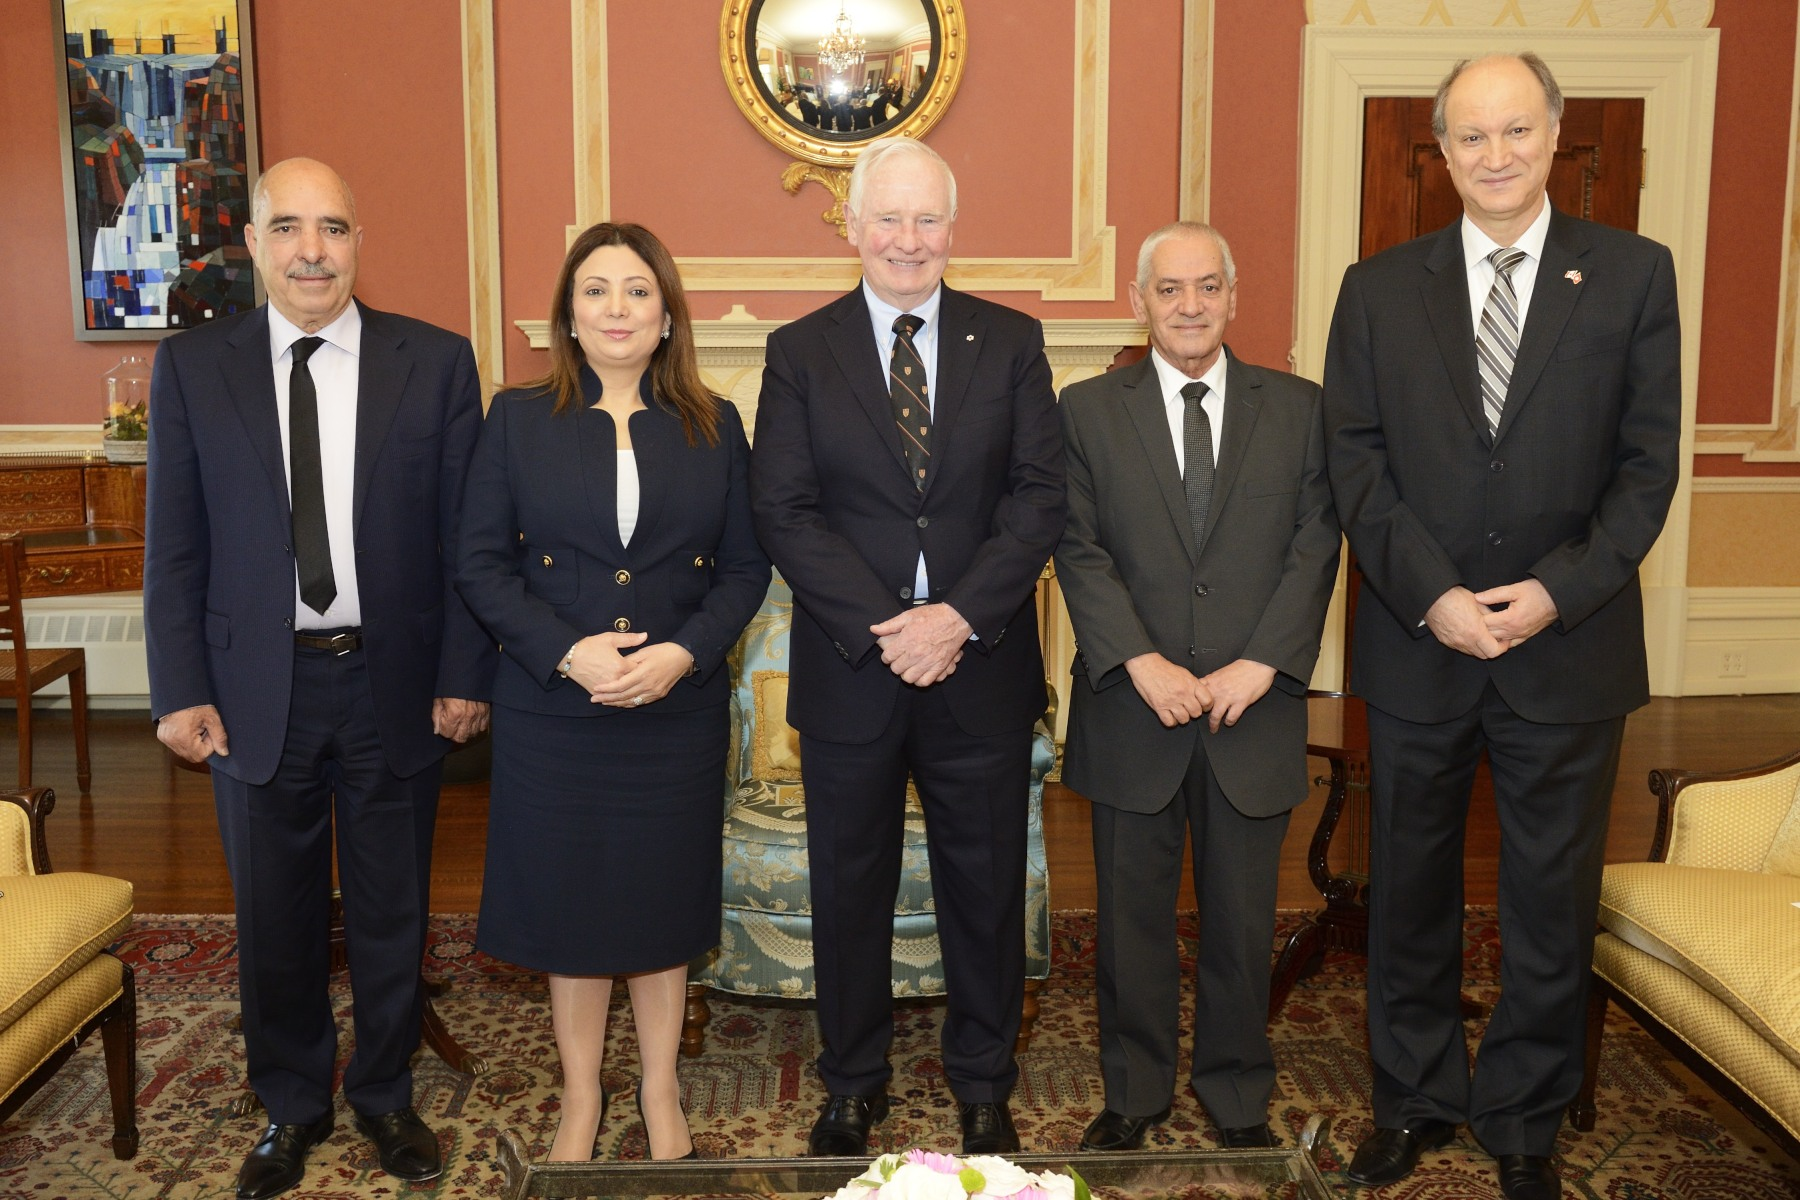 The Governor General joined by the representatives of the Quartet and His Excellency Riadh Essid,  Ambassador of the Republic of Tunisia in Canada (far right).